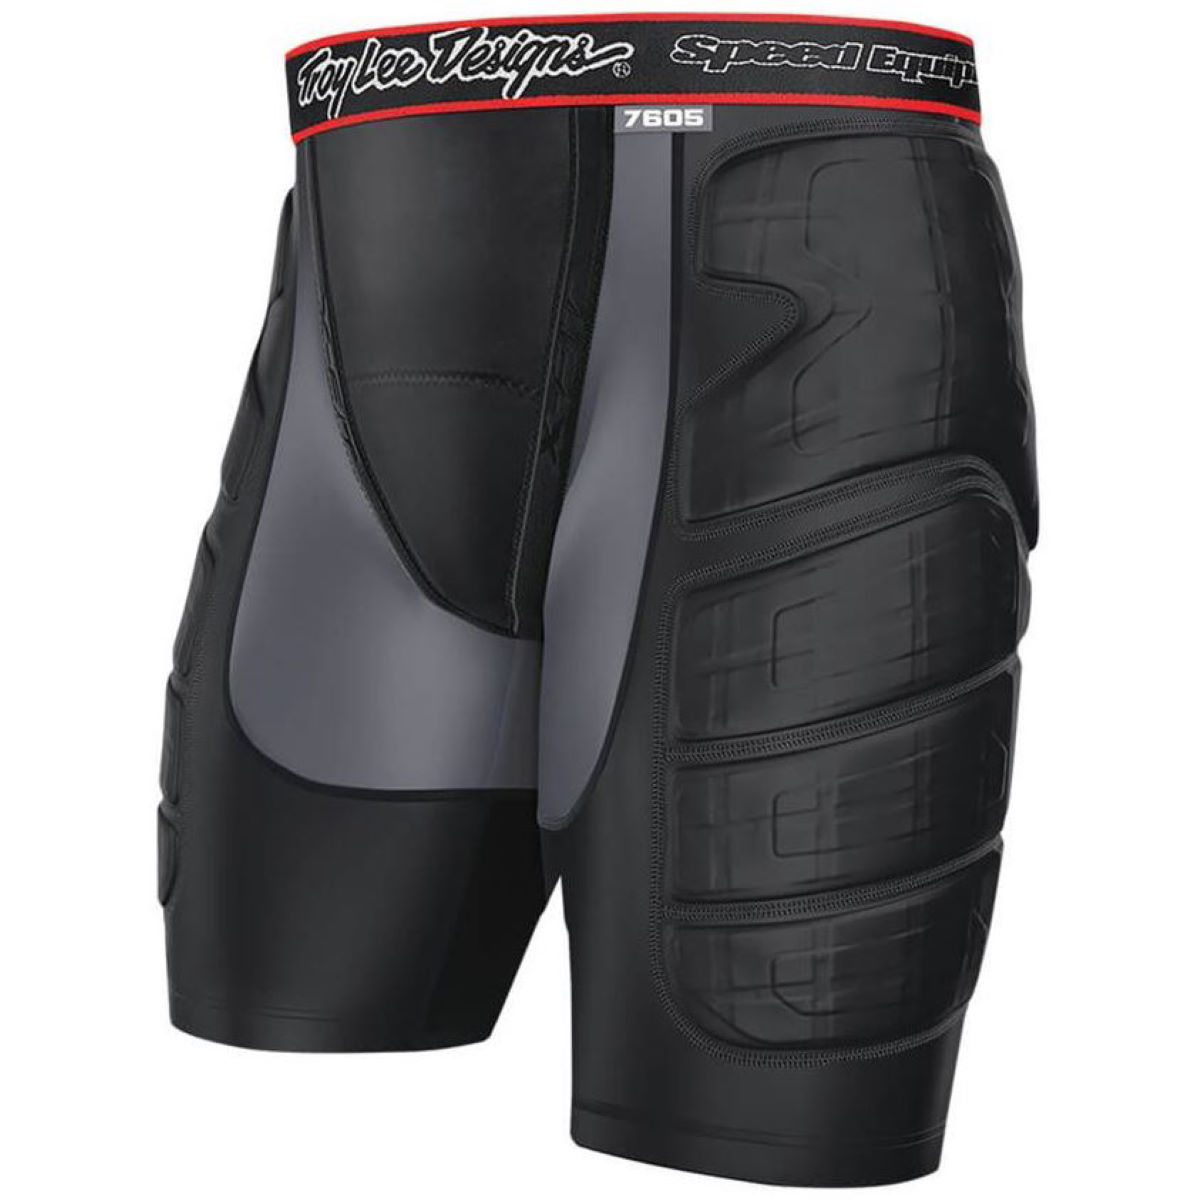 Troy Lee Designs Troy Lee Designs Youth L7605 Protective Short   Waist Shorts